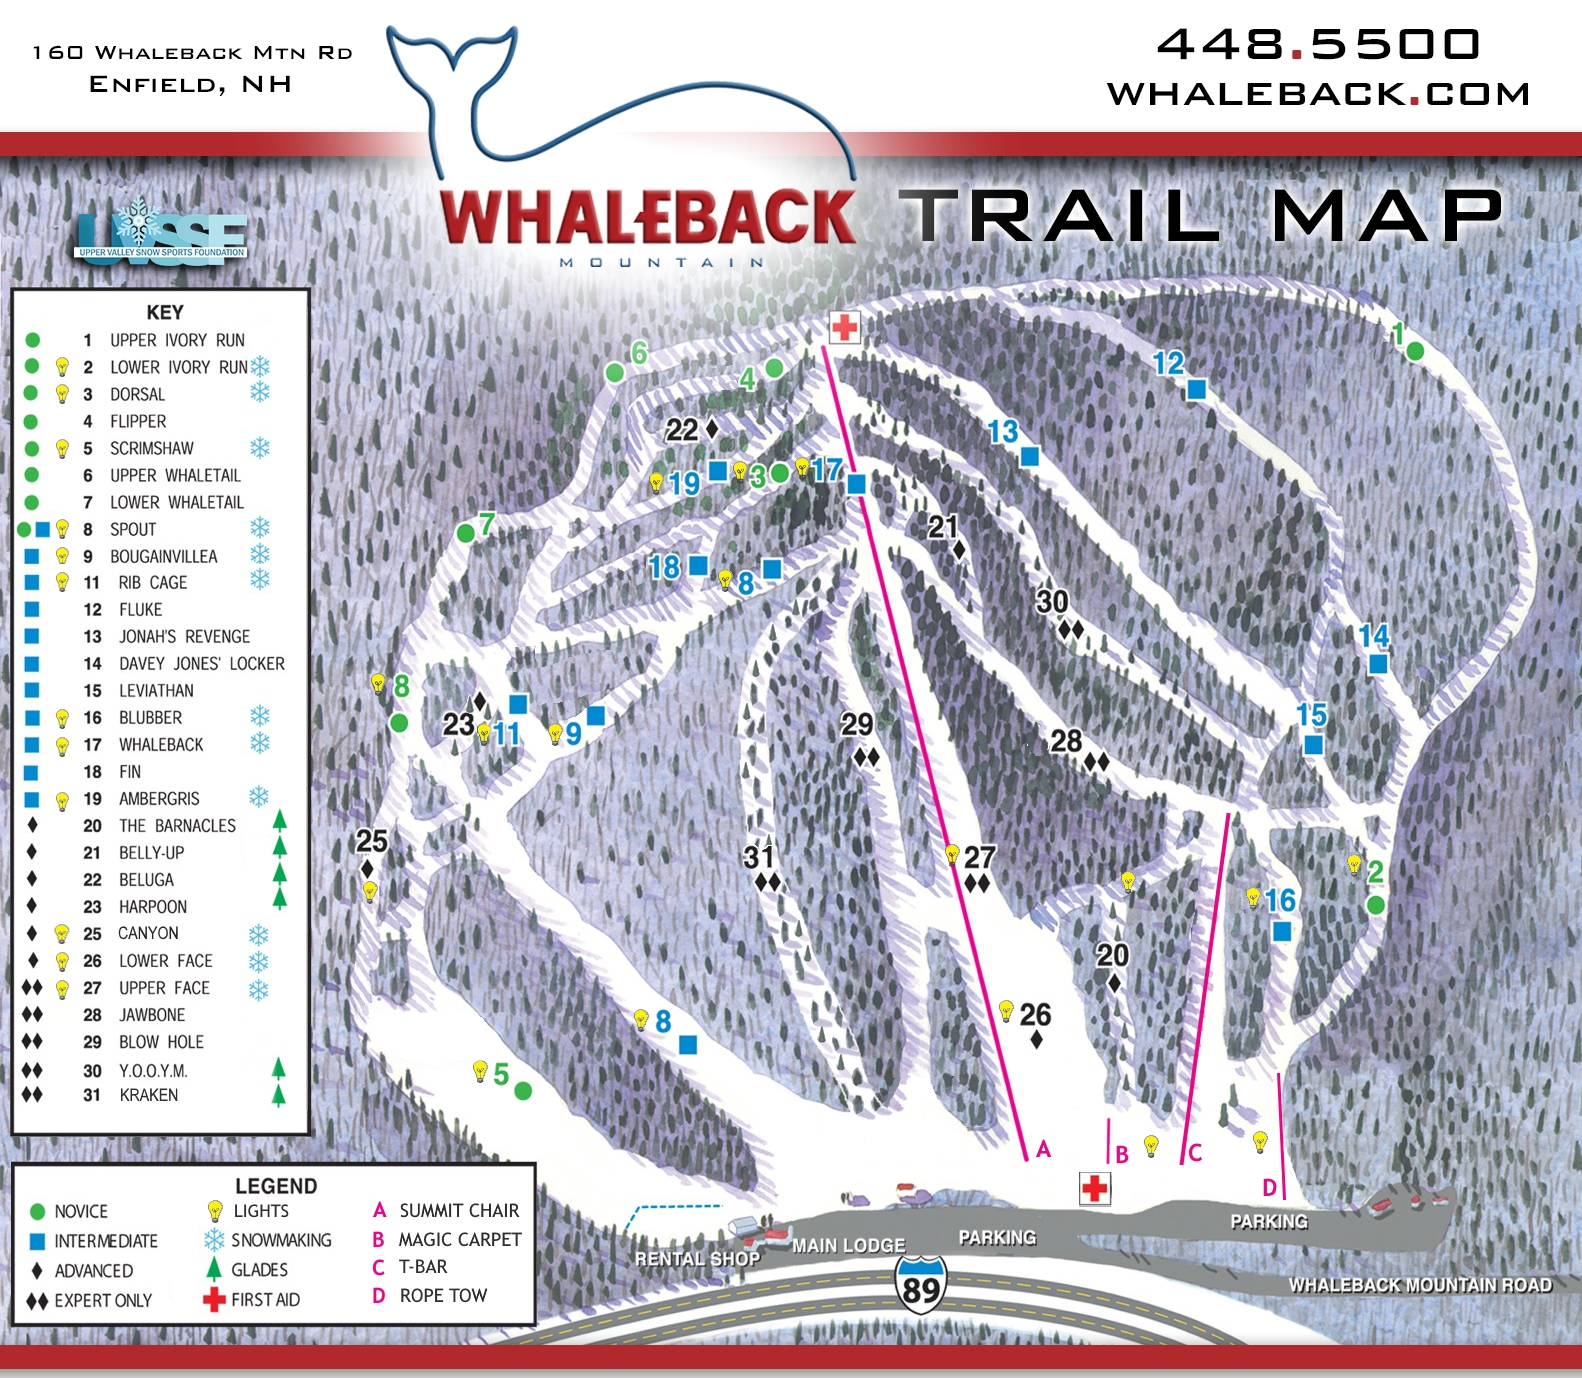 Trail Map — Whaleback Mountain on new hampshire on a map, new hampshire scenic drives map, new hampshire canada map, new hampshire tourism map, new hampshire parks map, new hampshire speedway map, new england ski resorts, new hampshire golf map, new hampshire lakes map, gunstock ski area trail map, nh new hampshire mountains map, new mexico ski resorts, new hampshire vineyards map, new hampshire campgrounds map, new hampshire trail maps, new hampshire schools map, new hampshire fishing map, new hampshire town line map, new hampshire colonial era map, steamboat springs ski area map,